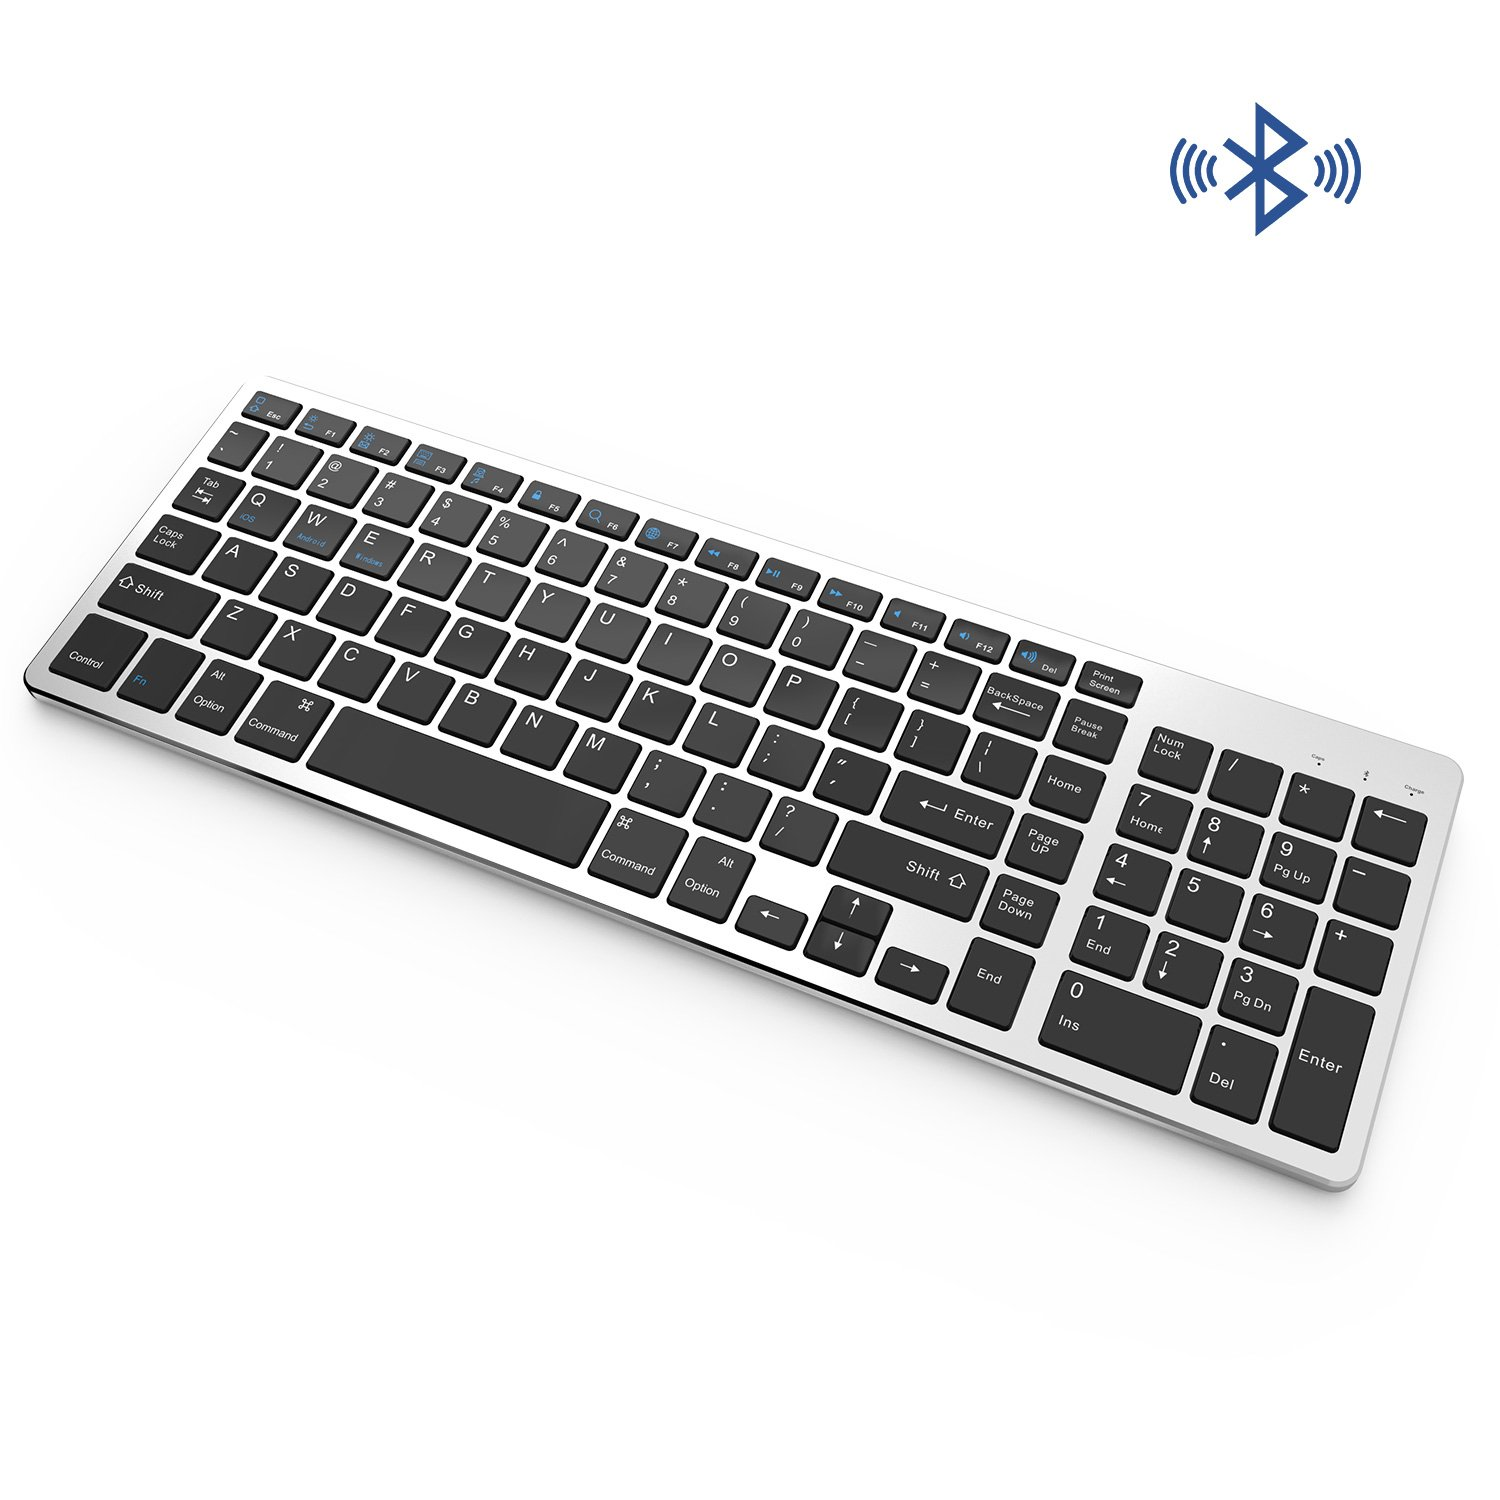 Bluetooth Keyboard, Vive Comb Rechargeable Portable BT Wireless Keyboard  with Number Pad Full Size Design for Laptop Desktop PC Tablet, Windows iOS